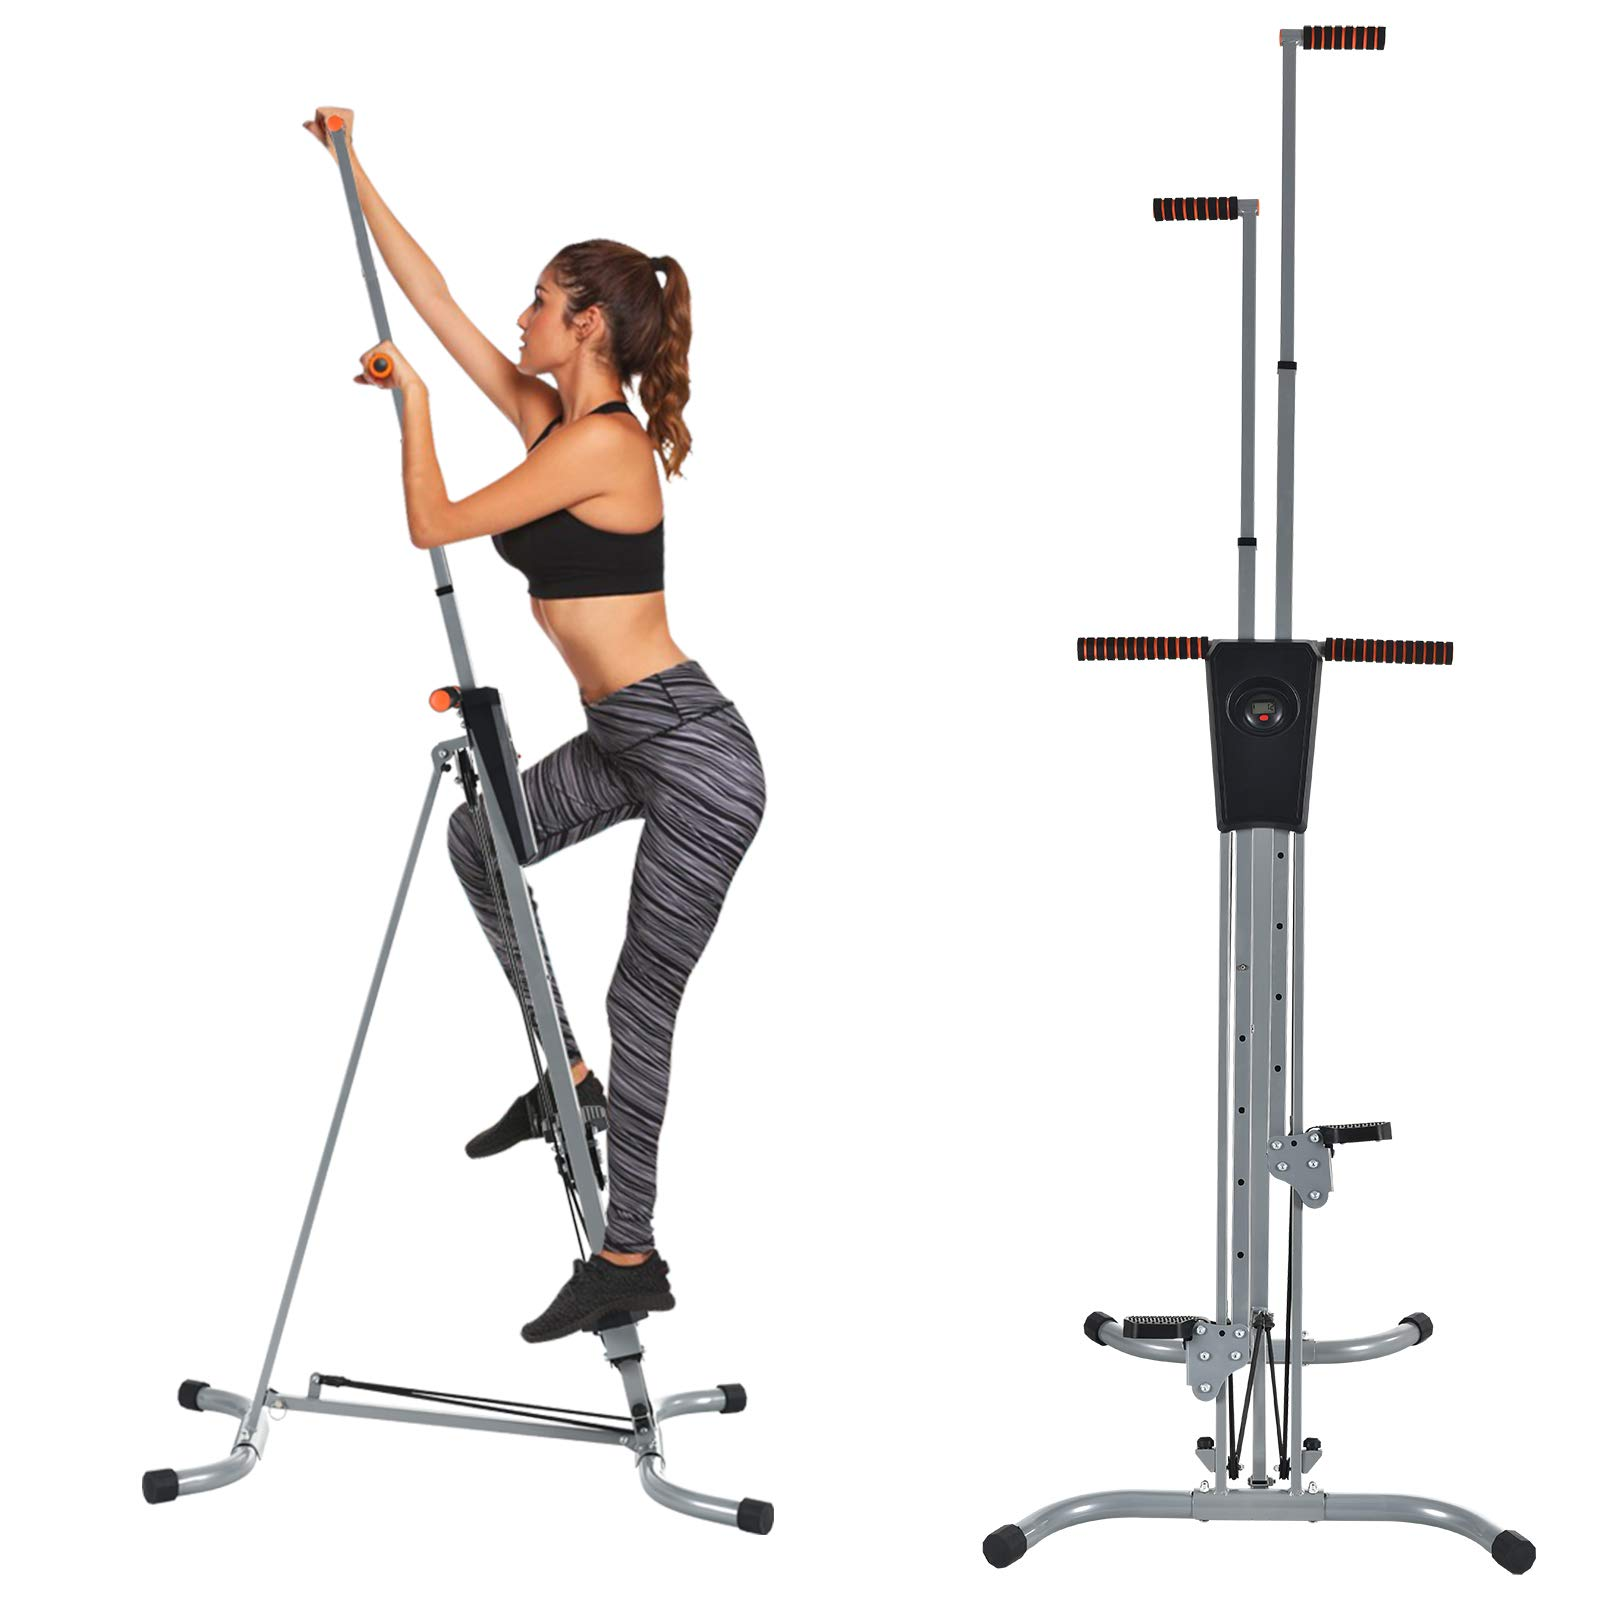 Murtisol Exercise Climber Fitness Vertical Climbing Cardio Machine with LCD Monitor,Natural Climbing Experience for Home Body Trainer